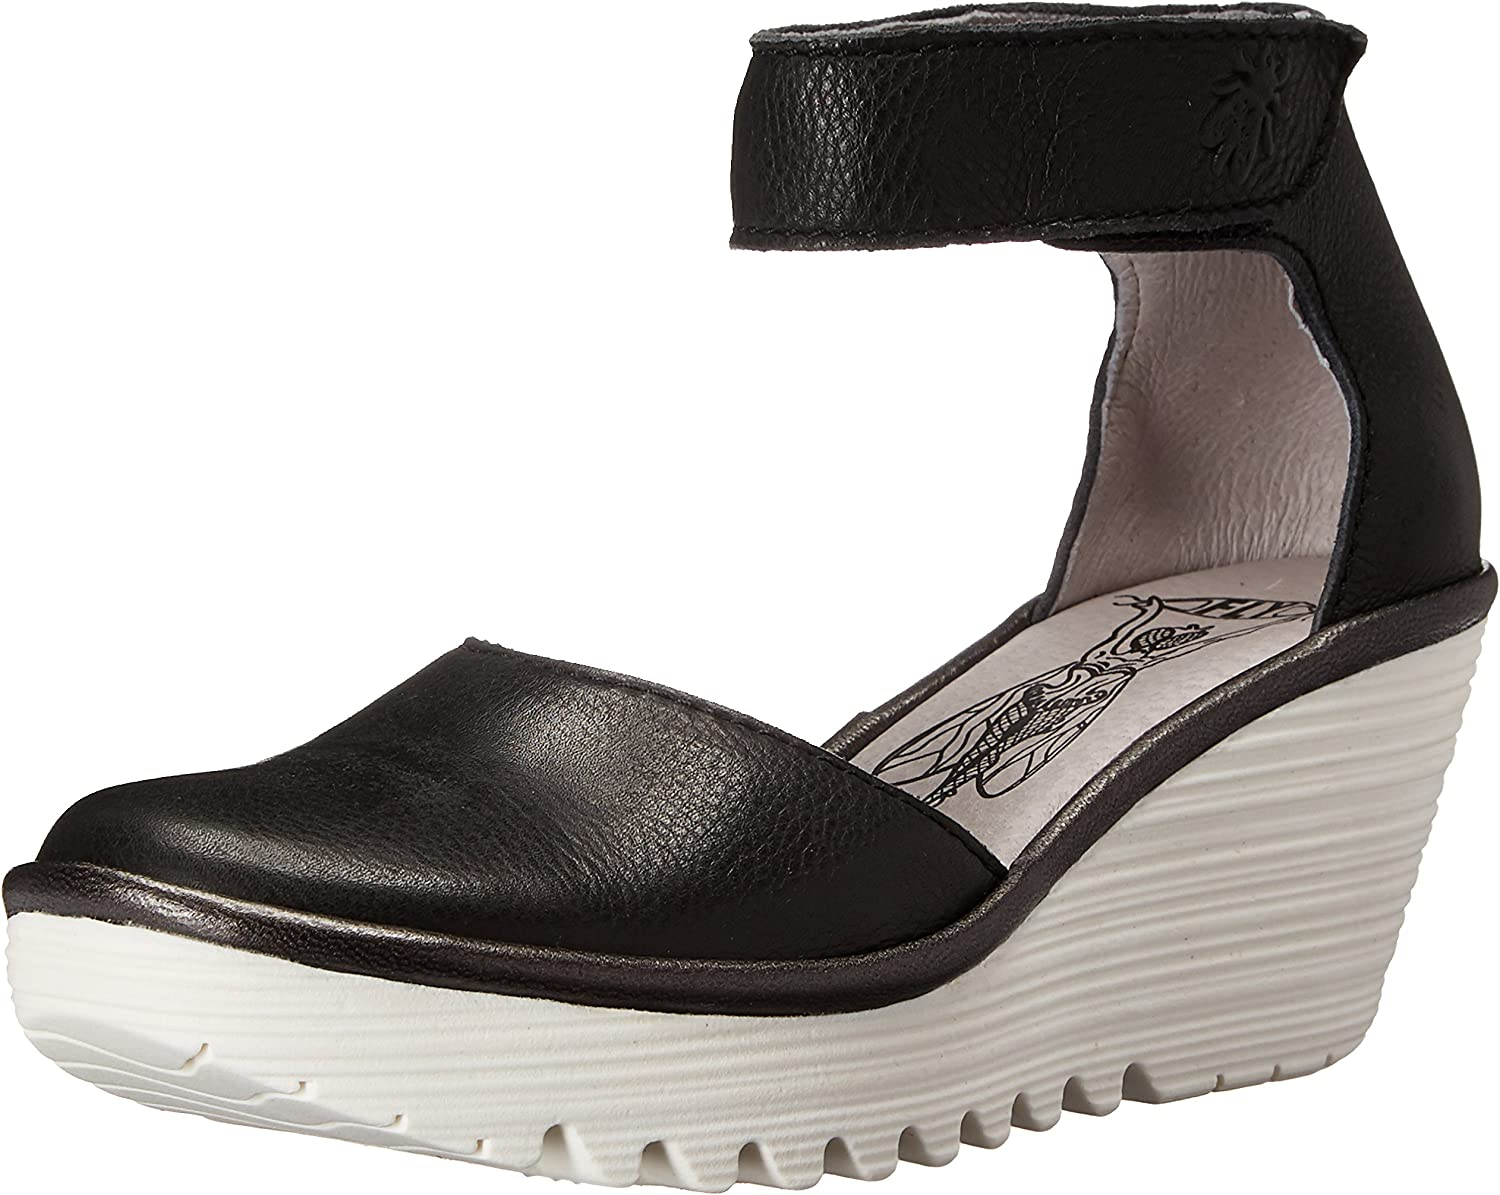 FLY London Women's Platform Sandal Yand709fly Selling and Direct stock discount selling